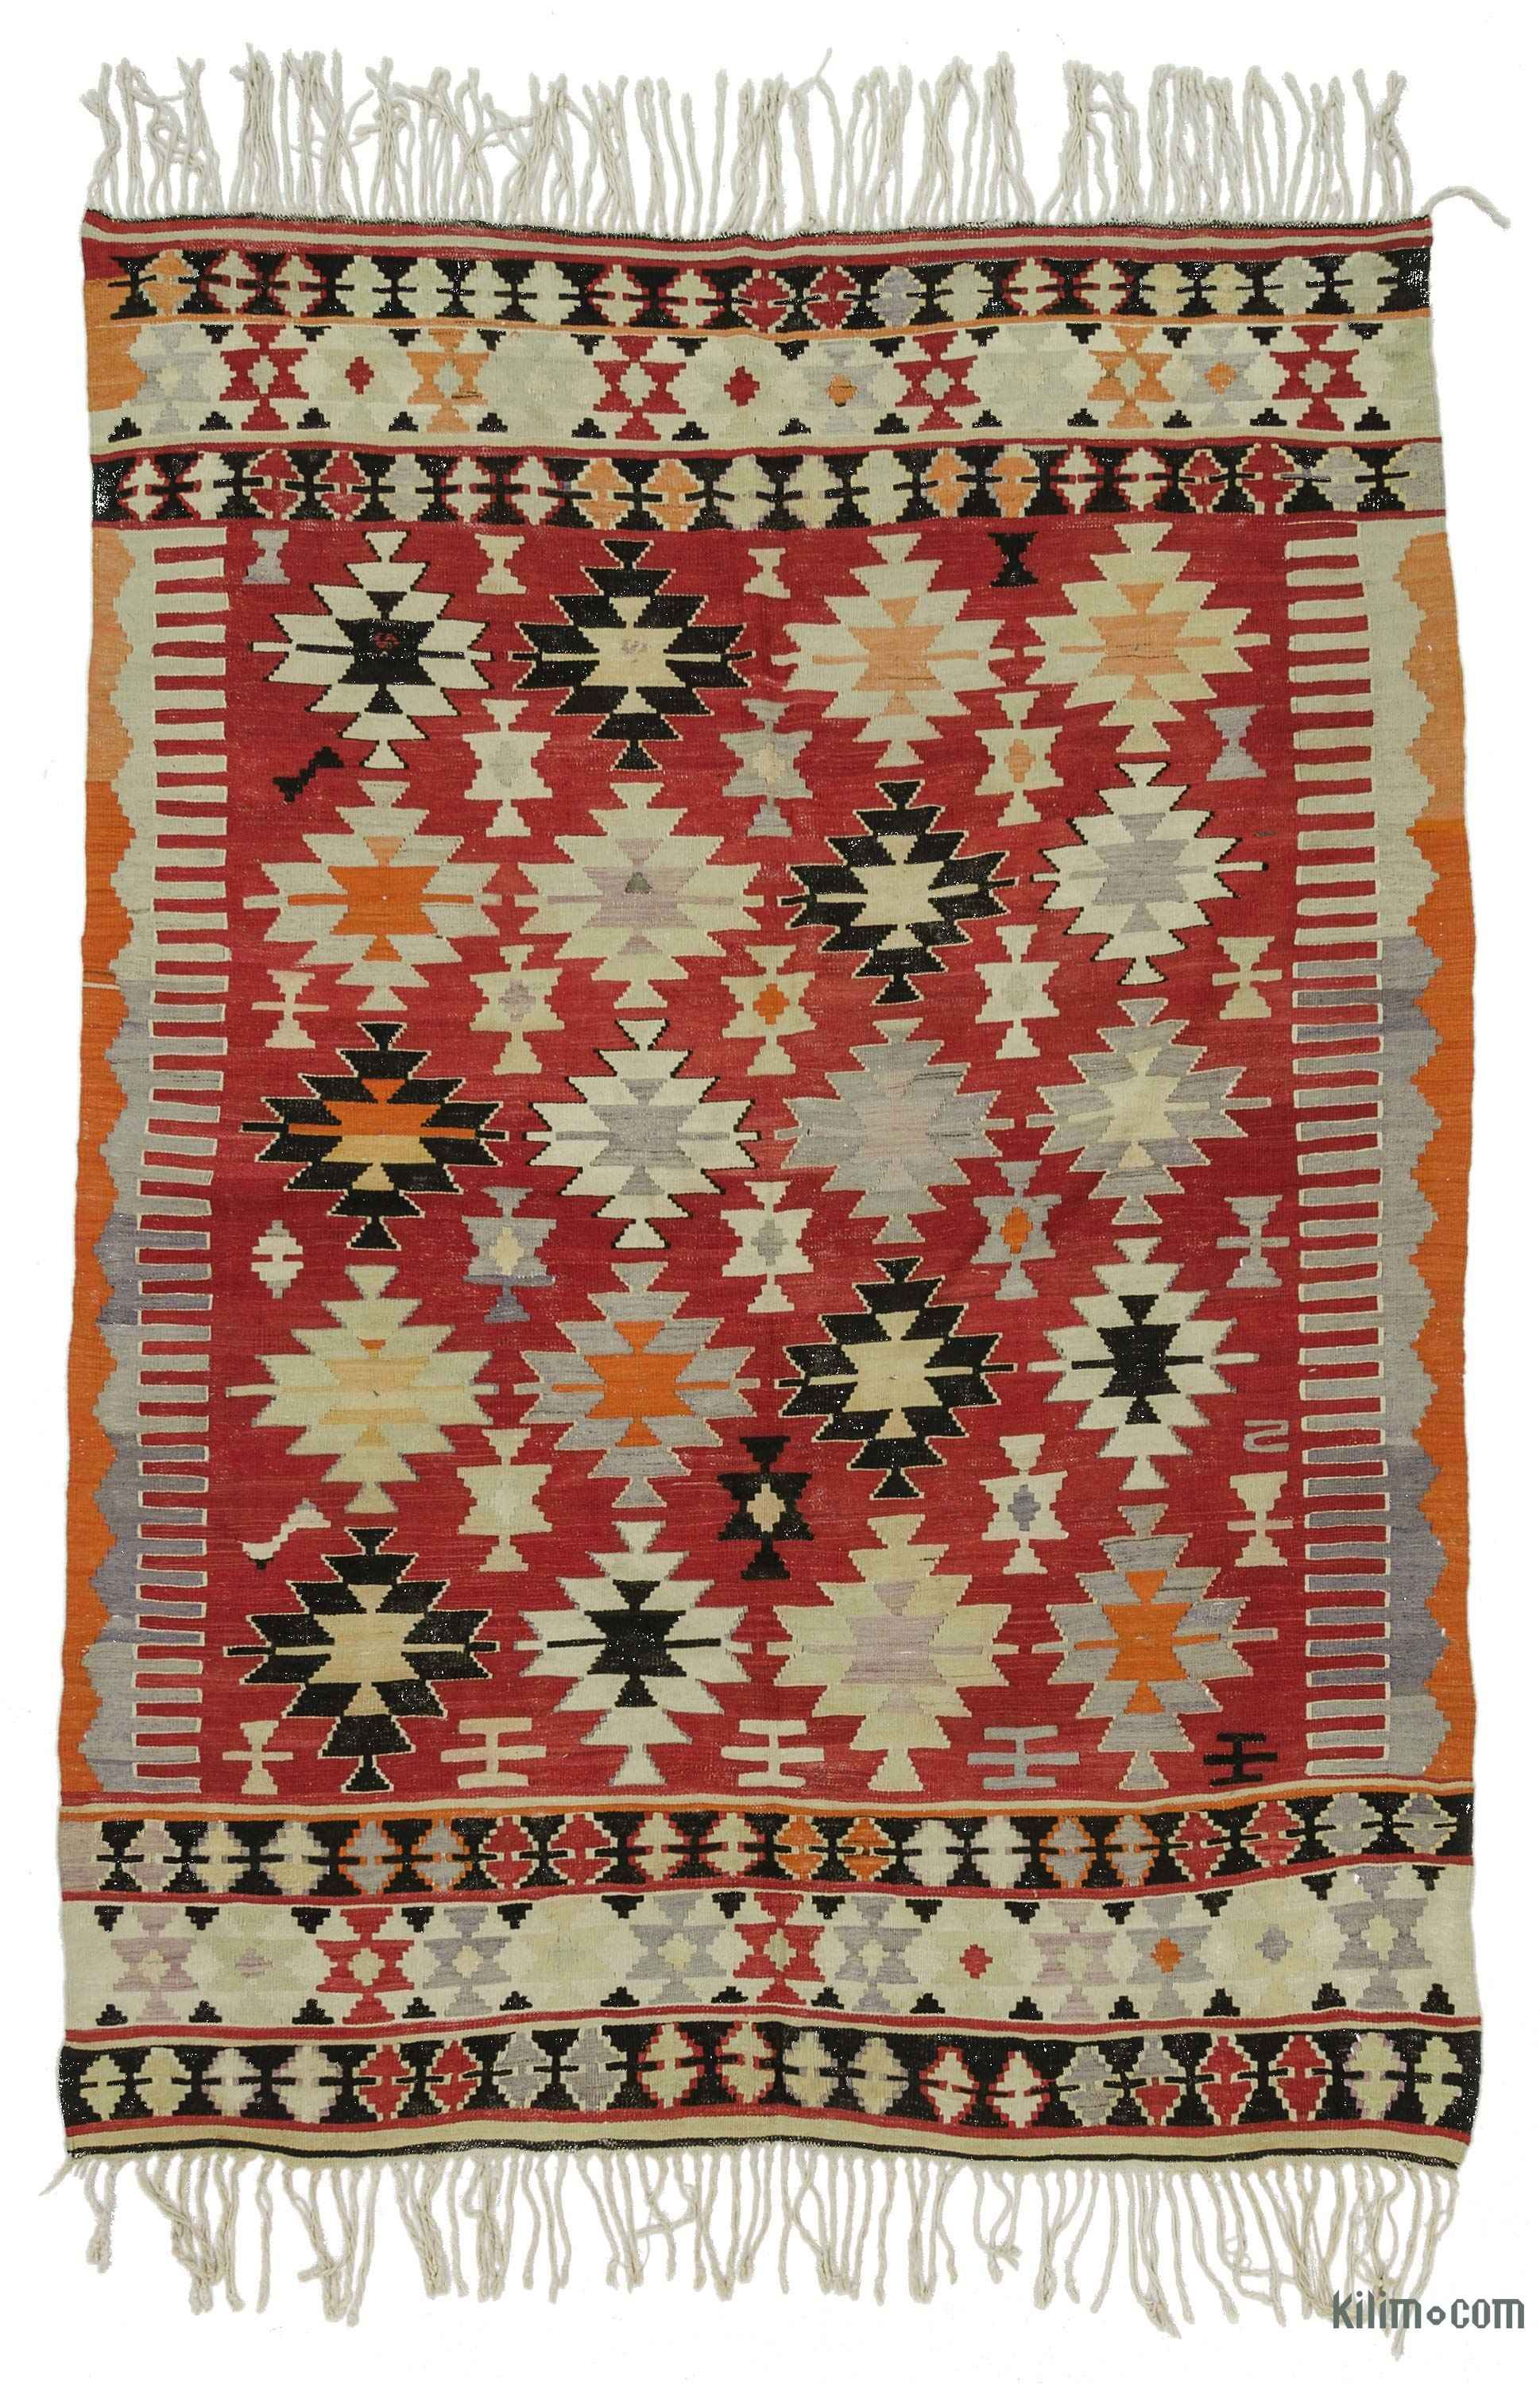 Vintage Cal Kilim Rug Hand Woven In 1960 S And Very Good Condition Is A Village Of Denizli The Aegean Region Turkey